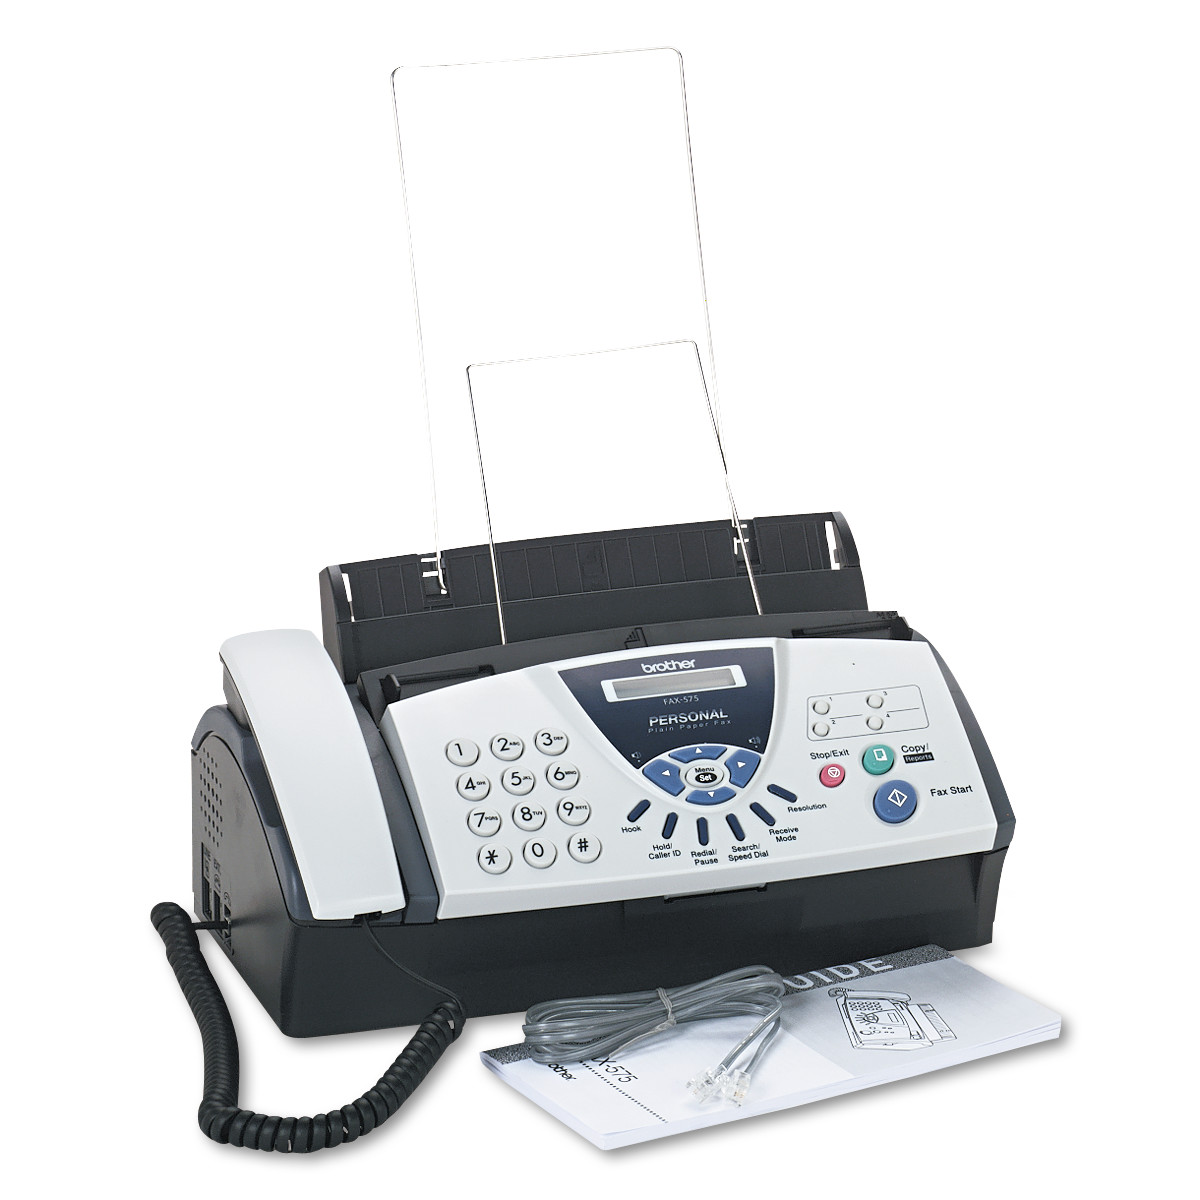 Brother FAX-575 Personal Fax Machine, Copy/Fax